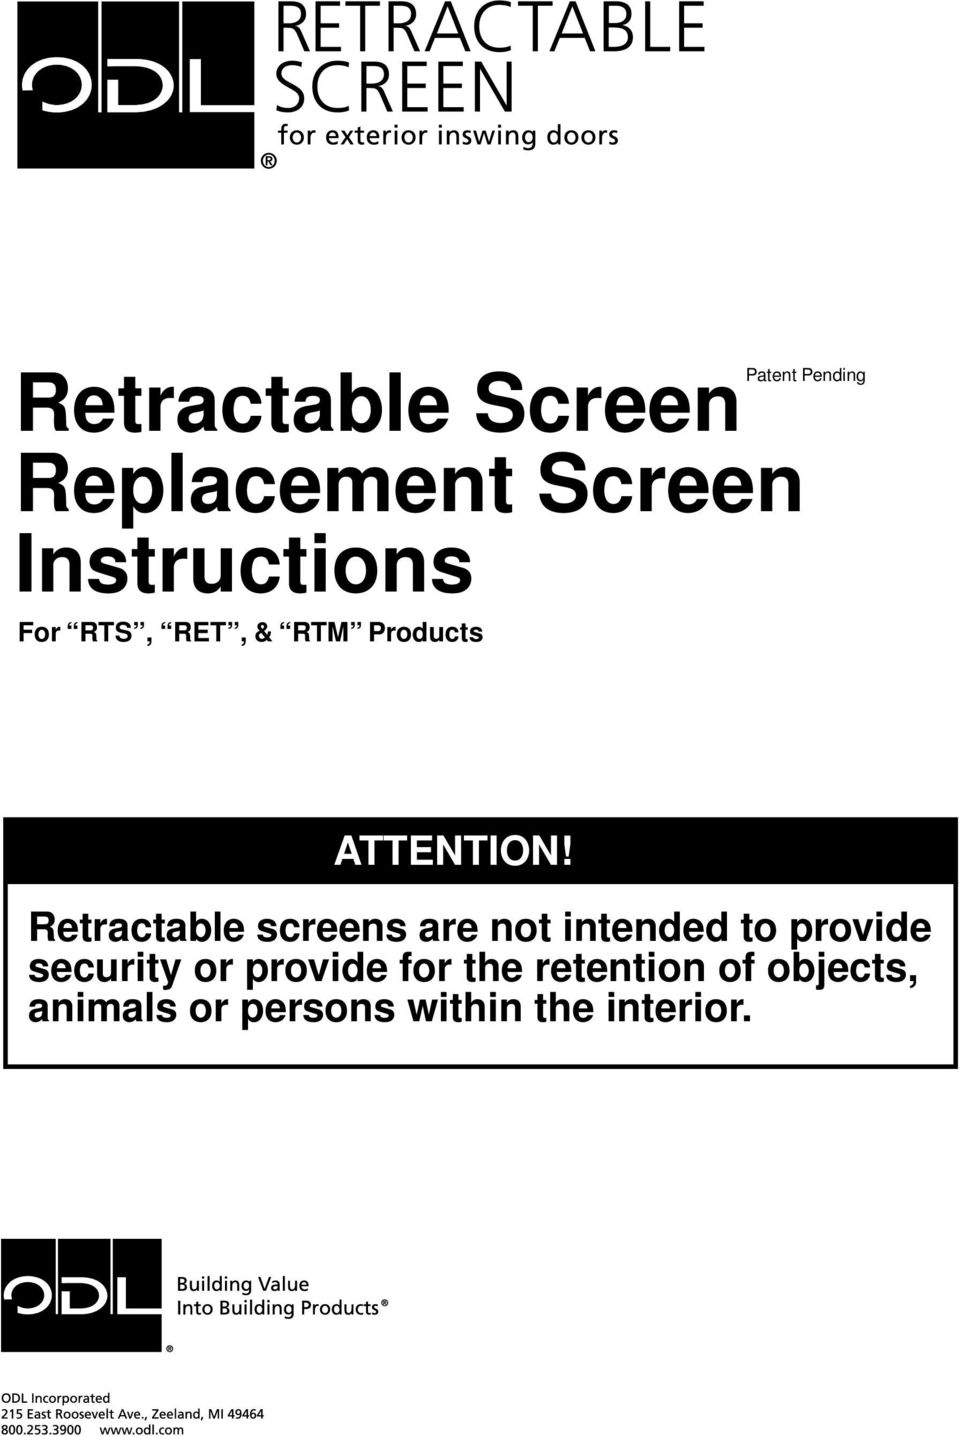 Retractable screens are not intended to provide security or